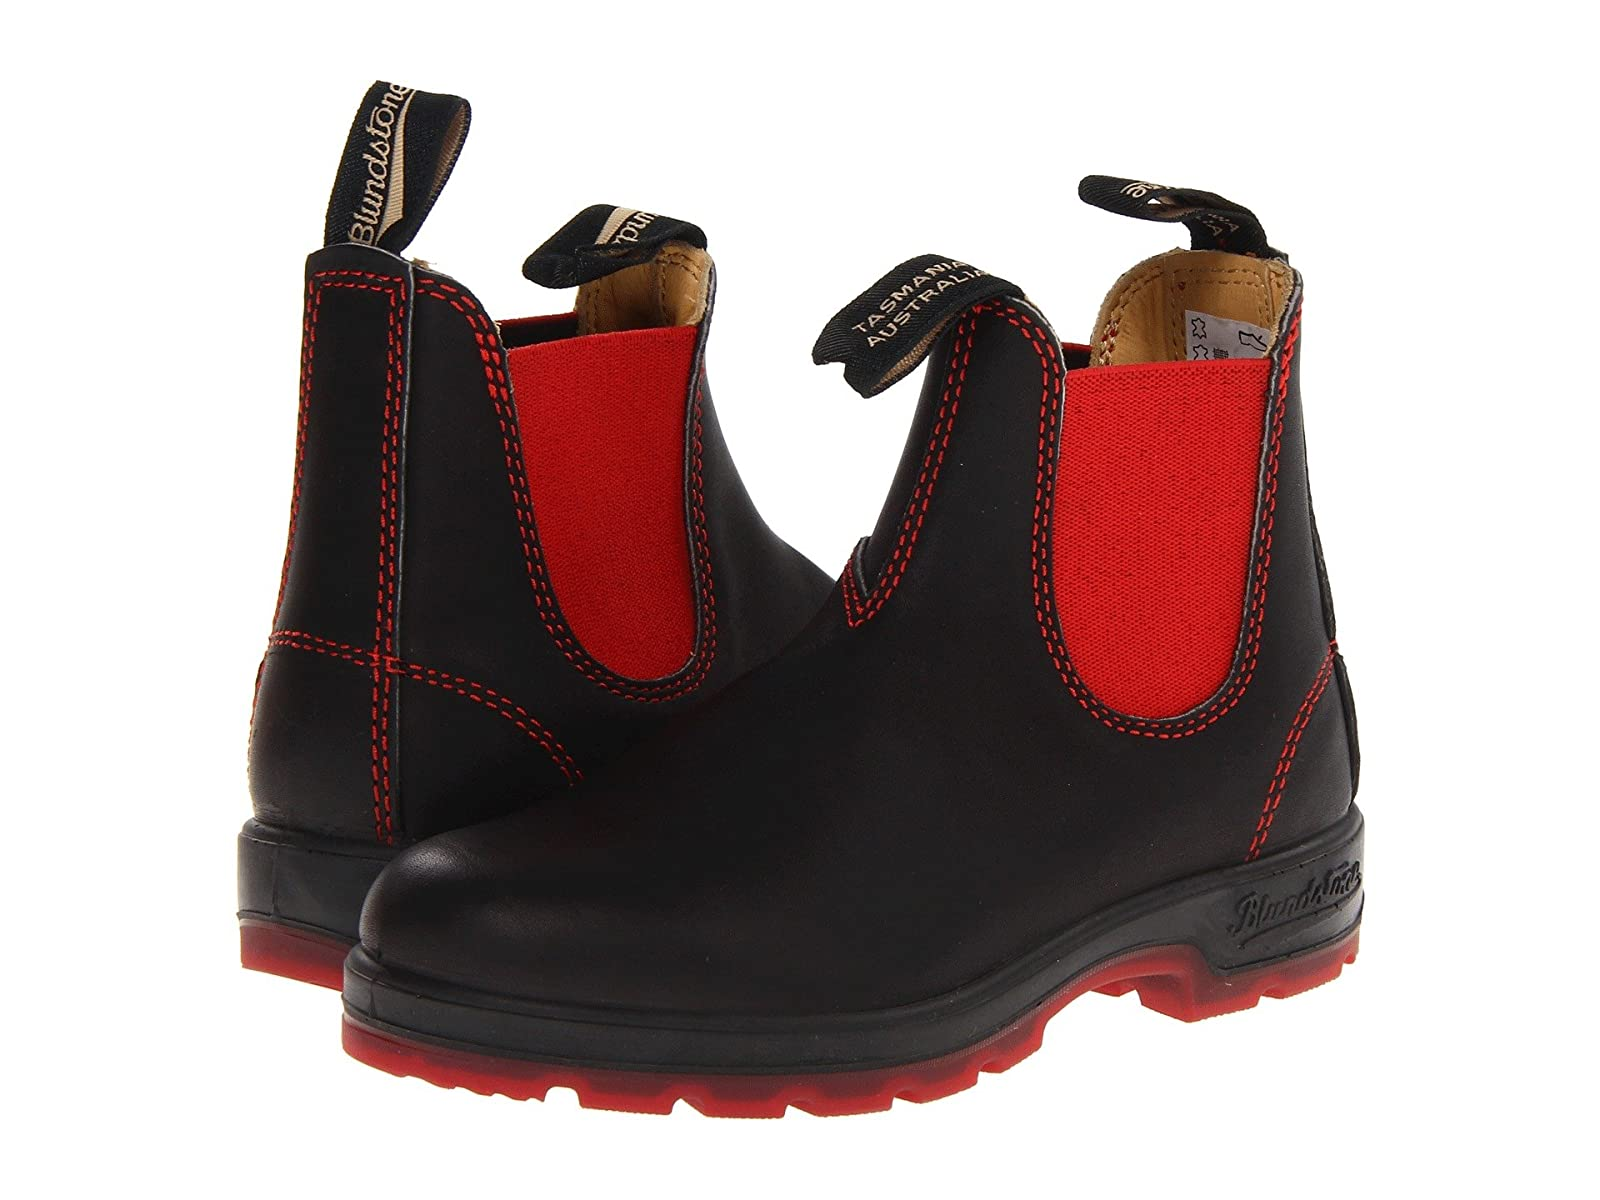 Blundstone BL1316Selling fashionable and eye-catching shoes